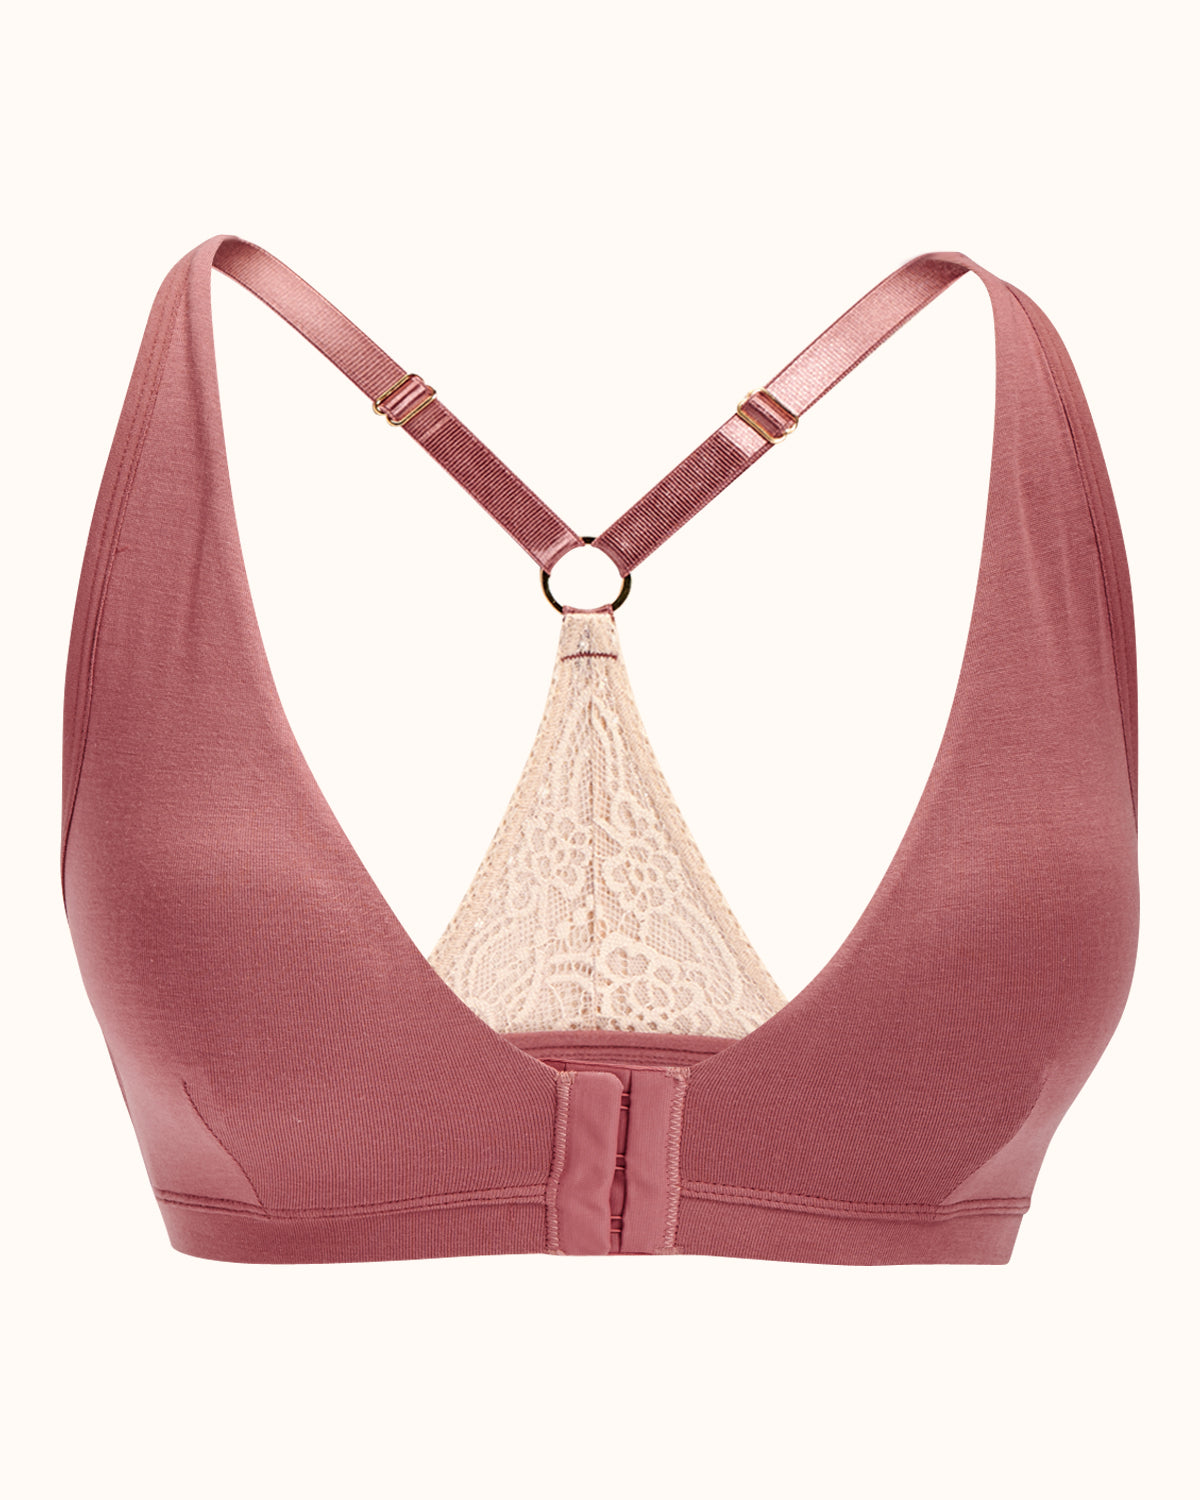 Dusty rose, pocketed front closure lace racerback bra with a plunging neckline and soft wire free cups.